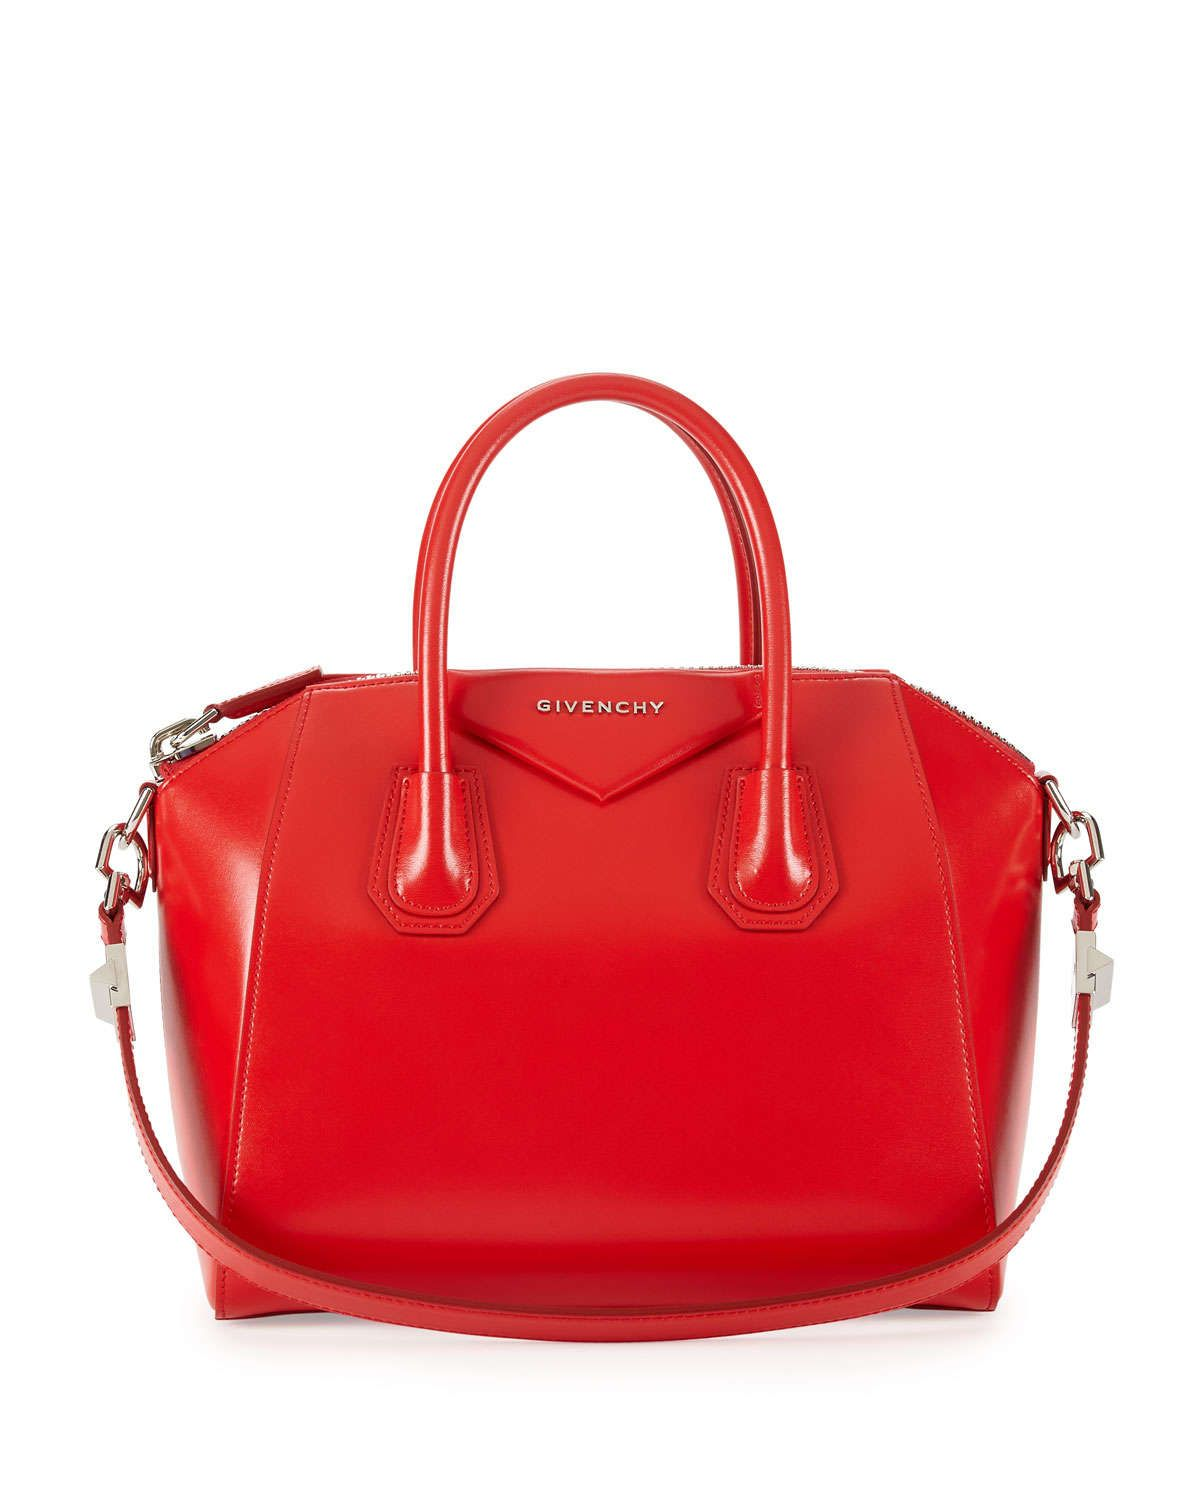 2a042c4c47c Antigona Small Leather Satchel Bag Red in 2019 | Purses | Leather ...